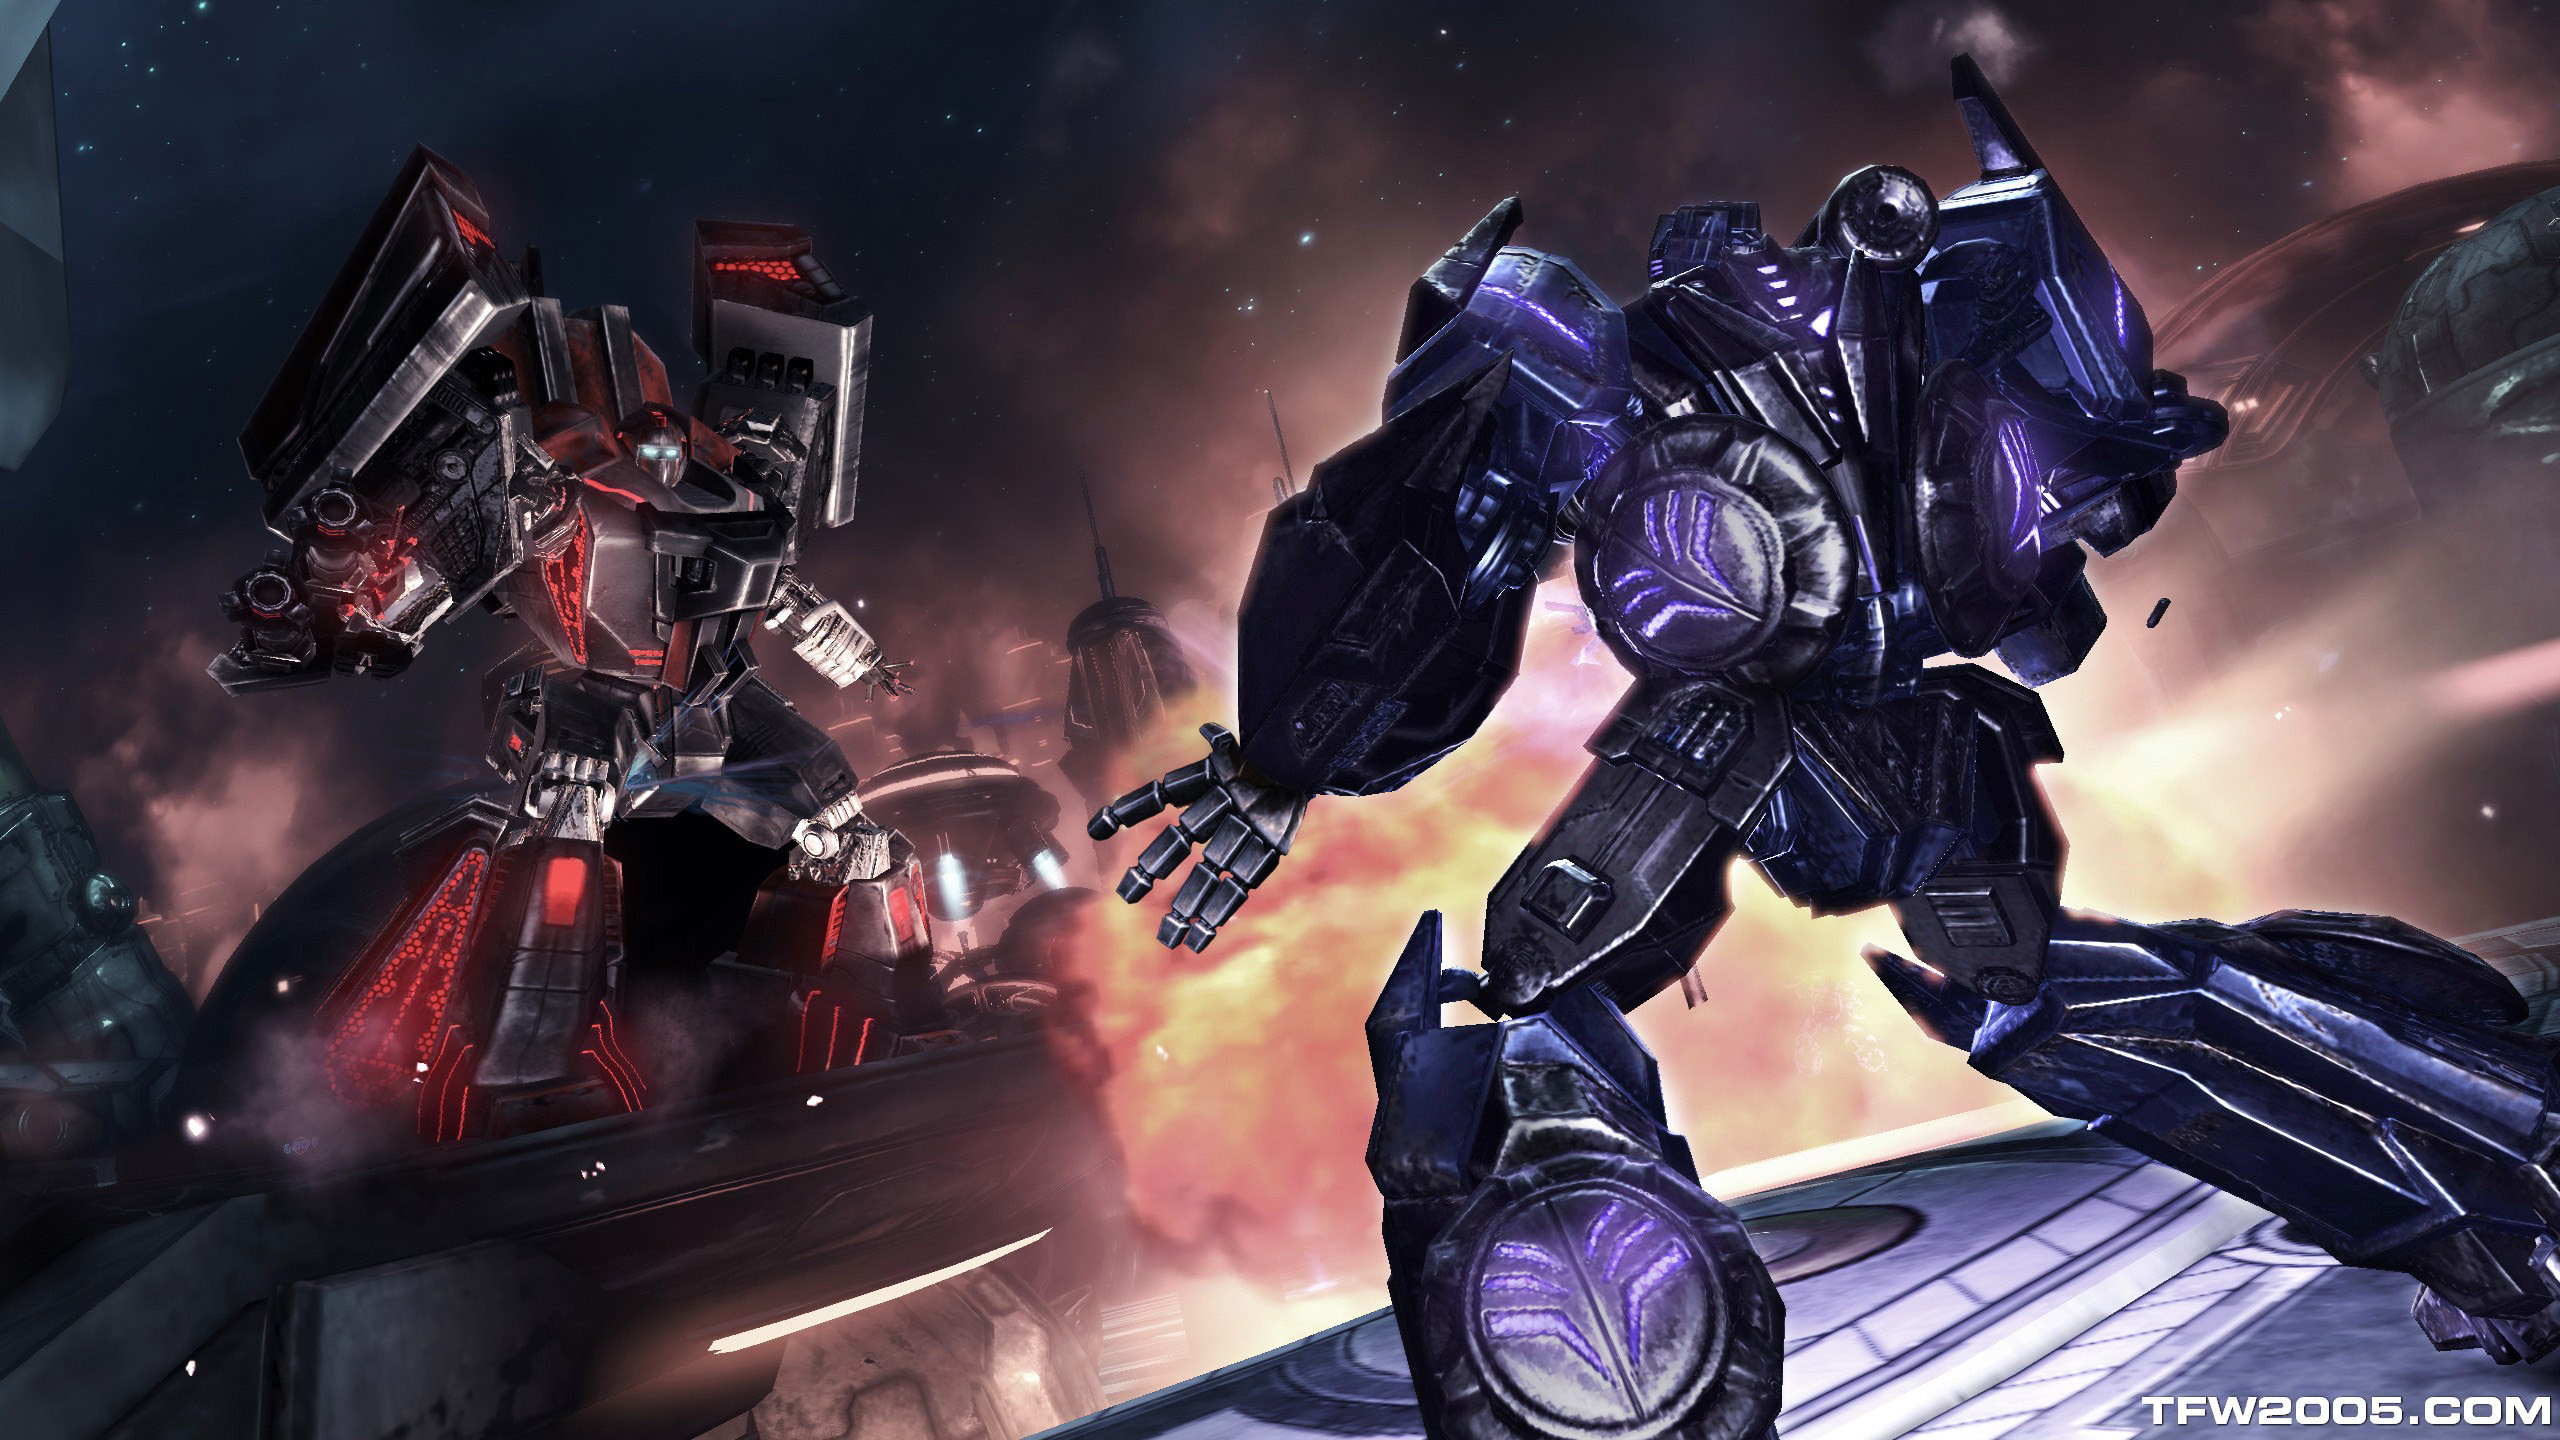 Transformers Cybertron Wallpaper 80 Images